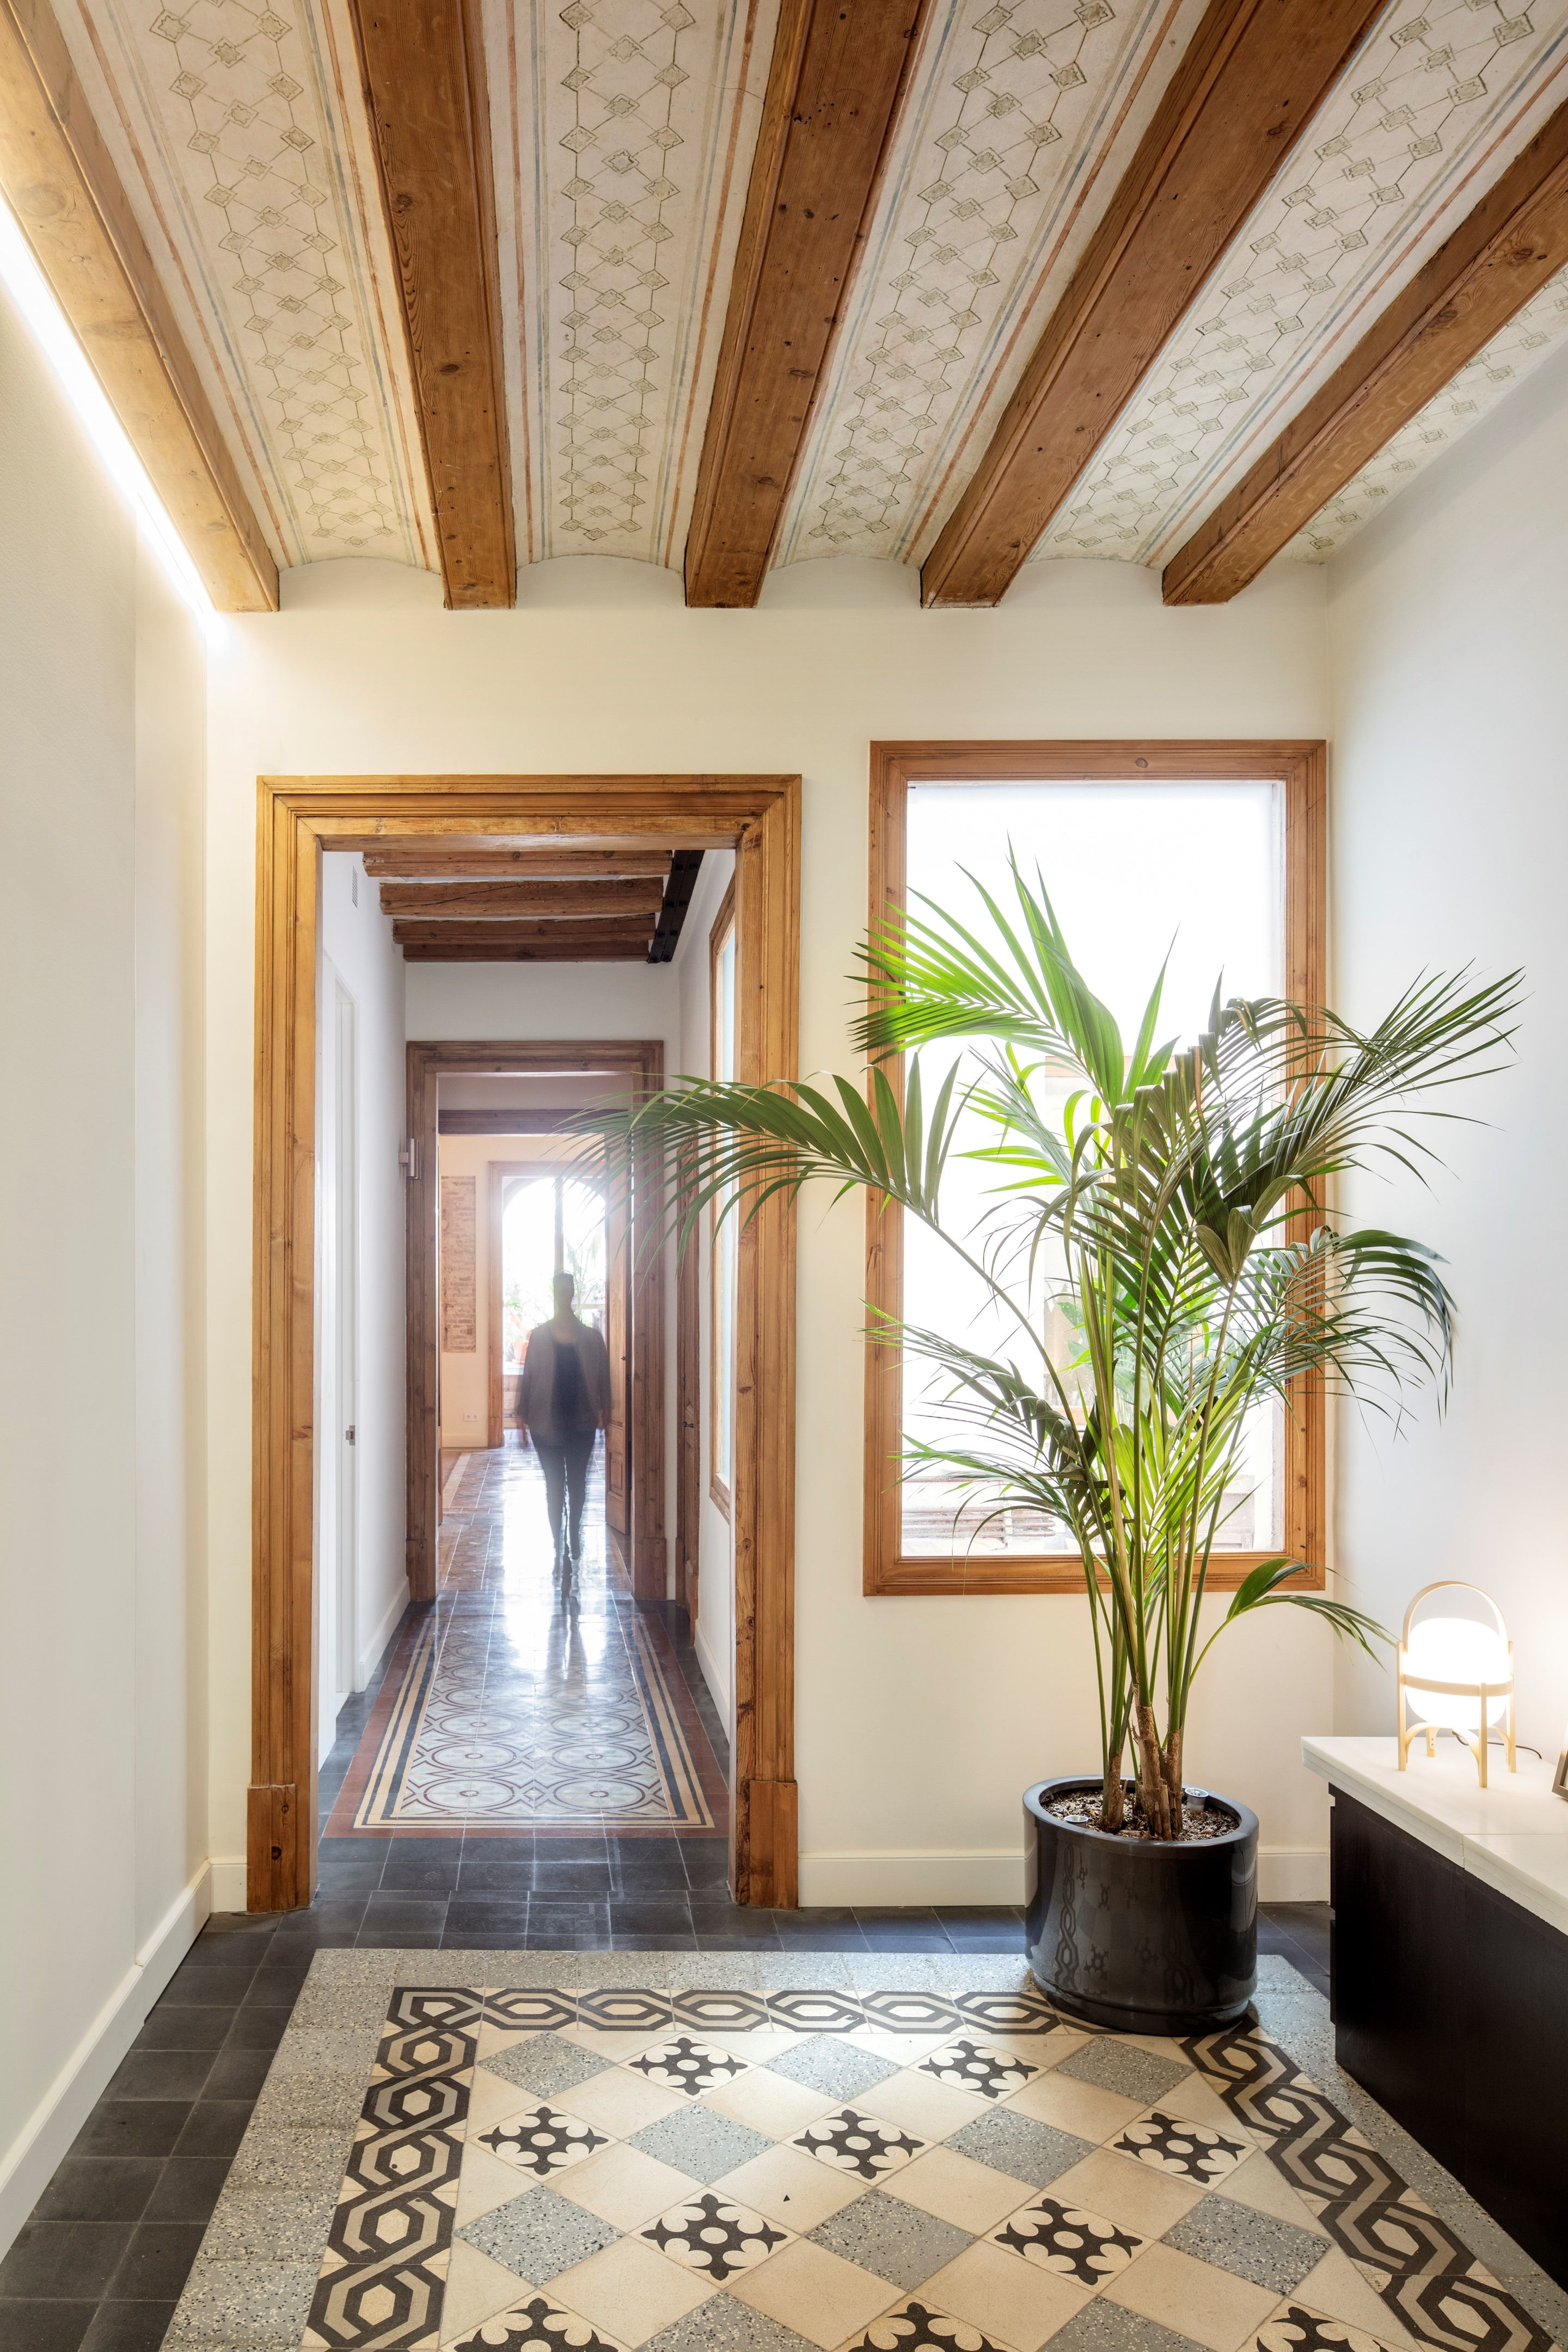 Recovery Room Design: Building Design, Historic